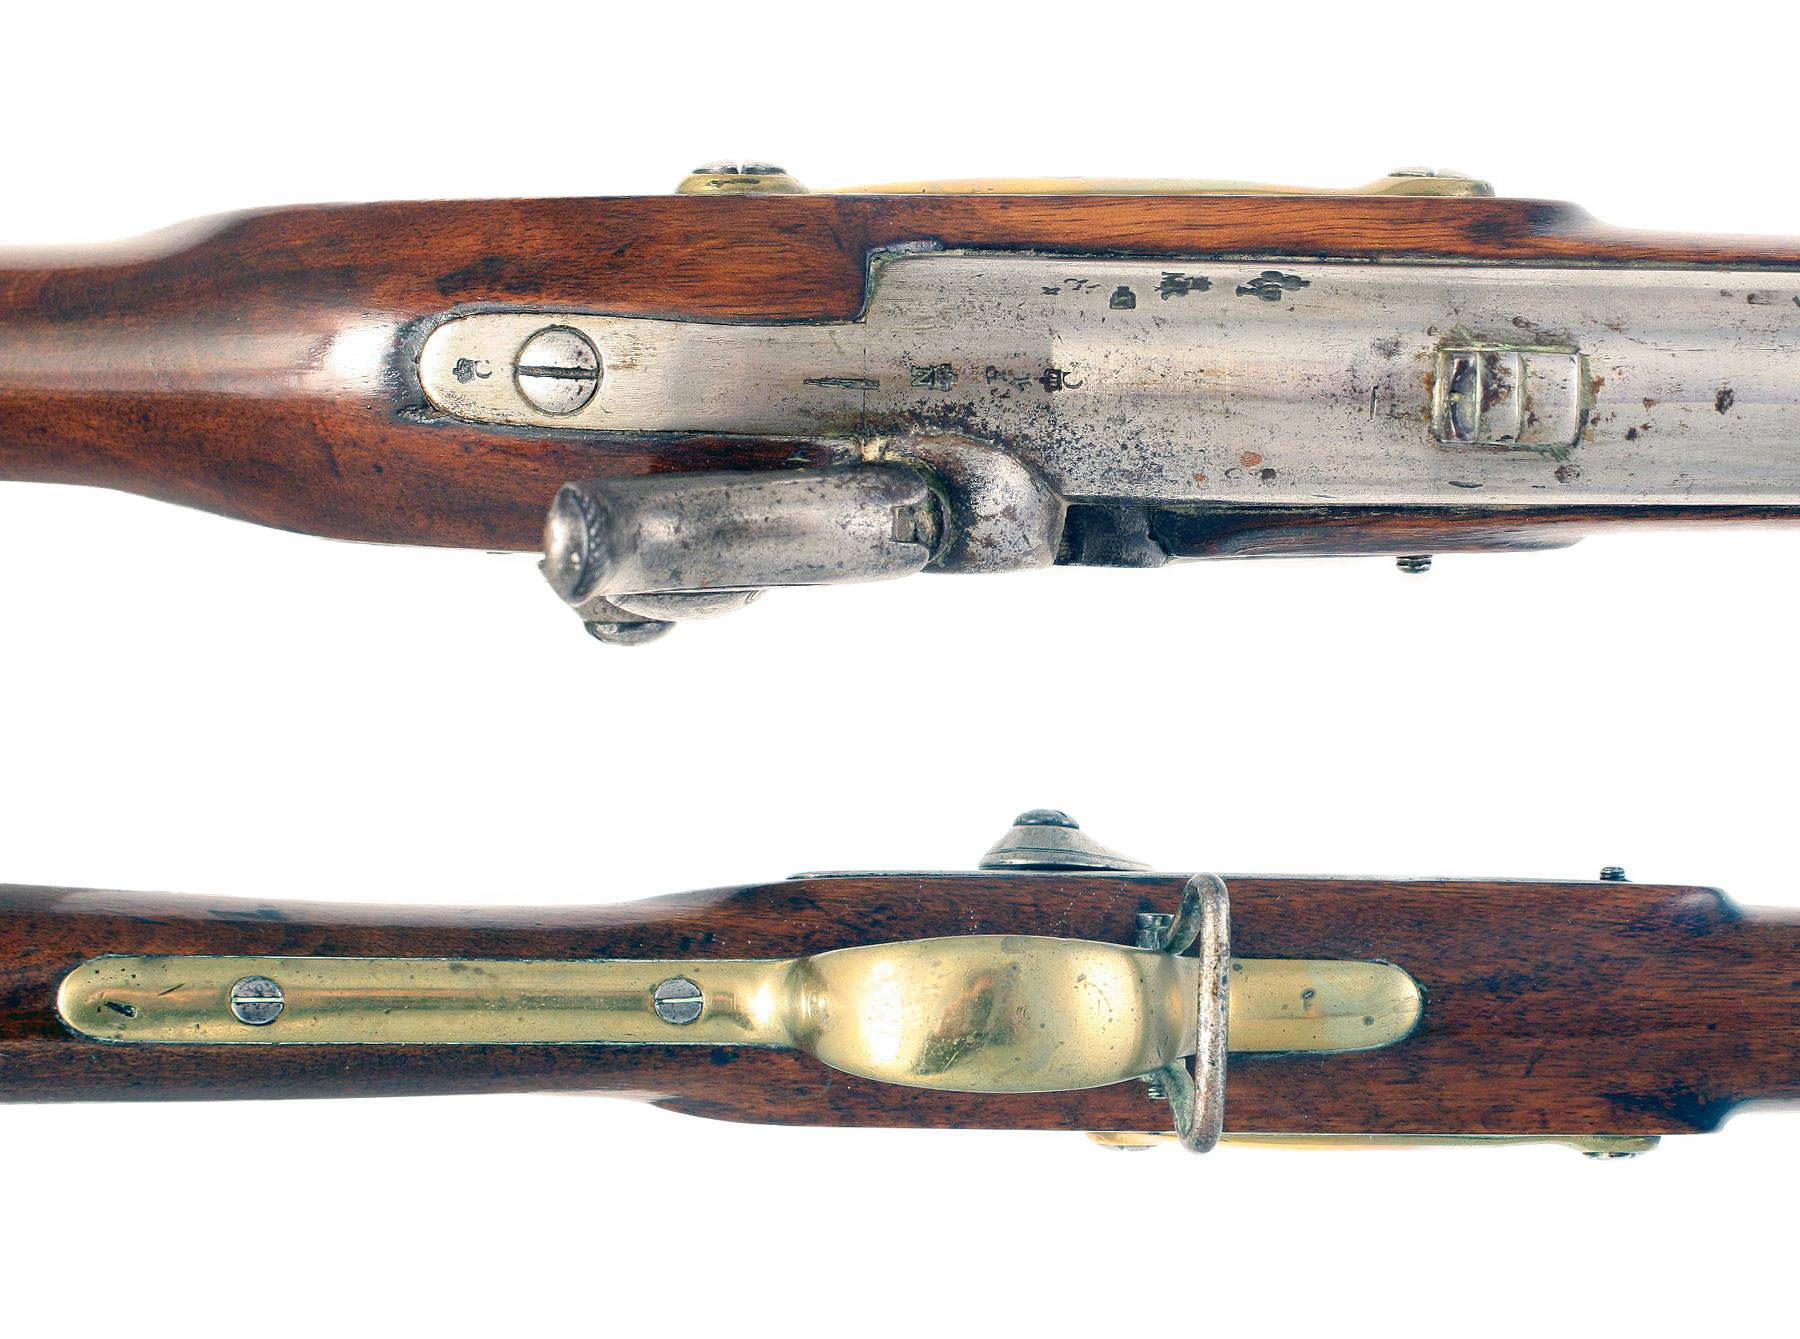 A Scarce P39 Musket